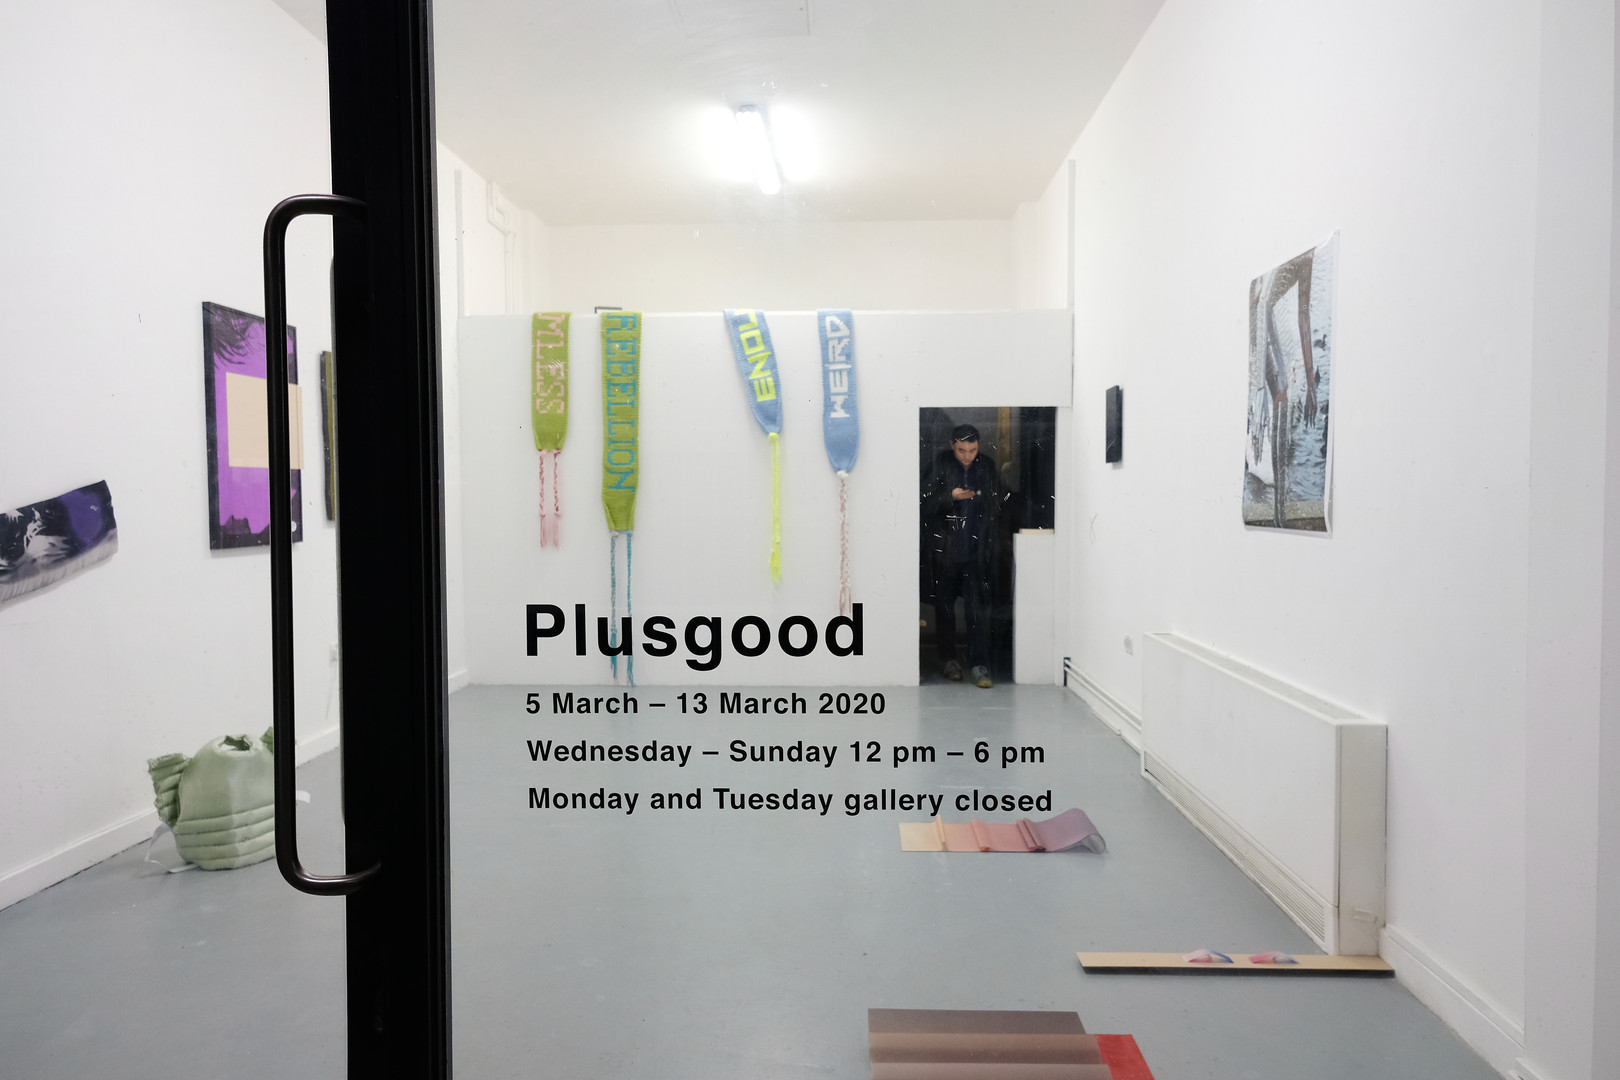 Installation view of Break Now the Dawn at Plusgood, Enclave, London. March 2020.